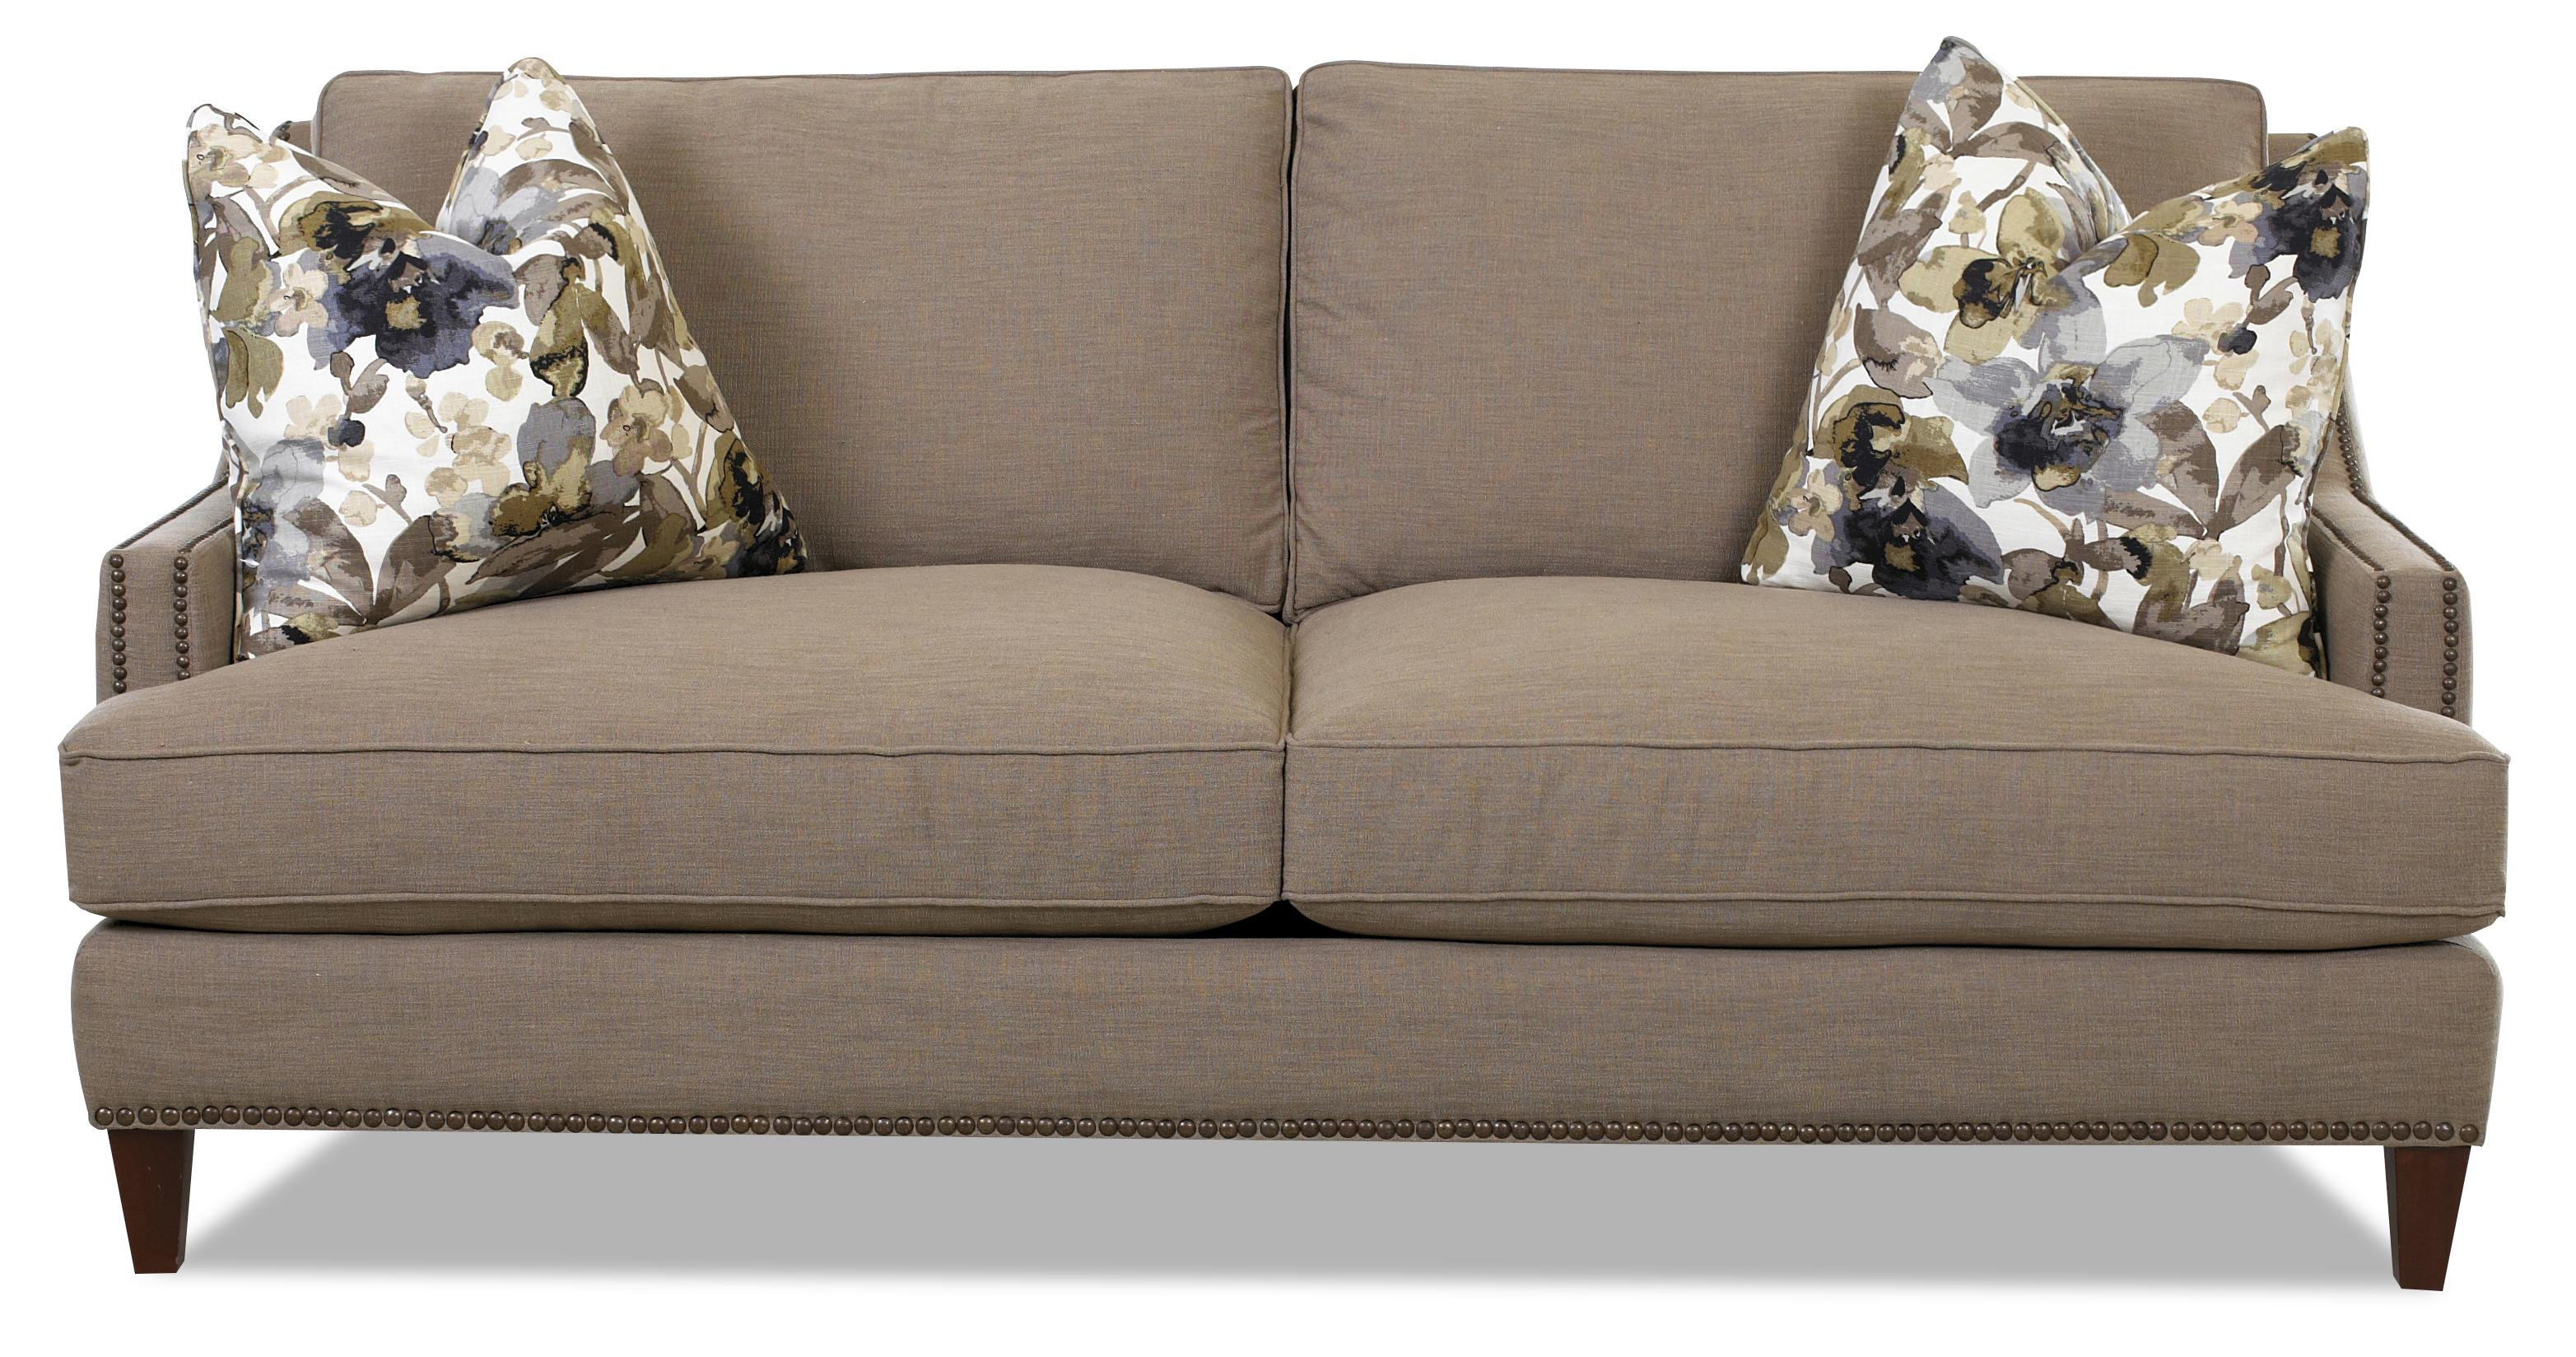 transitional nail head wing back loveseat with blend down cushions  - transitional nail head wing back loveseat with blend down cushions